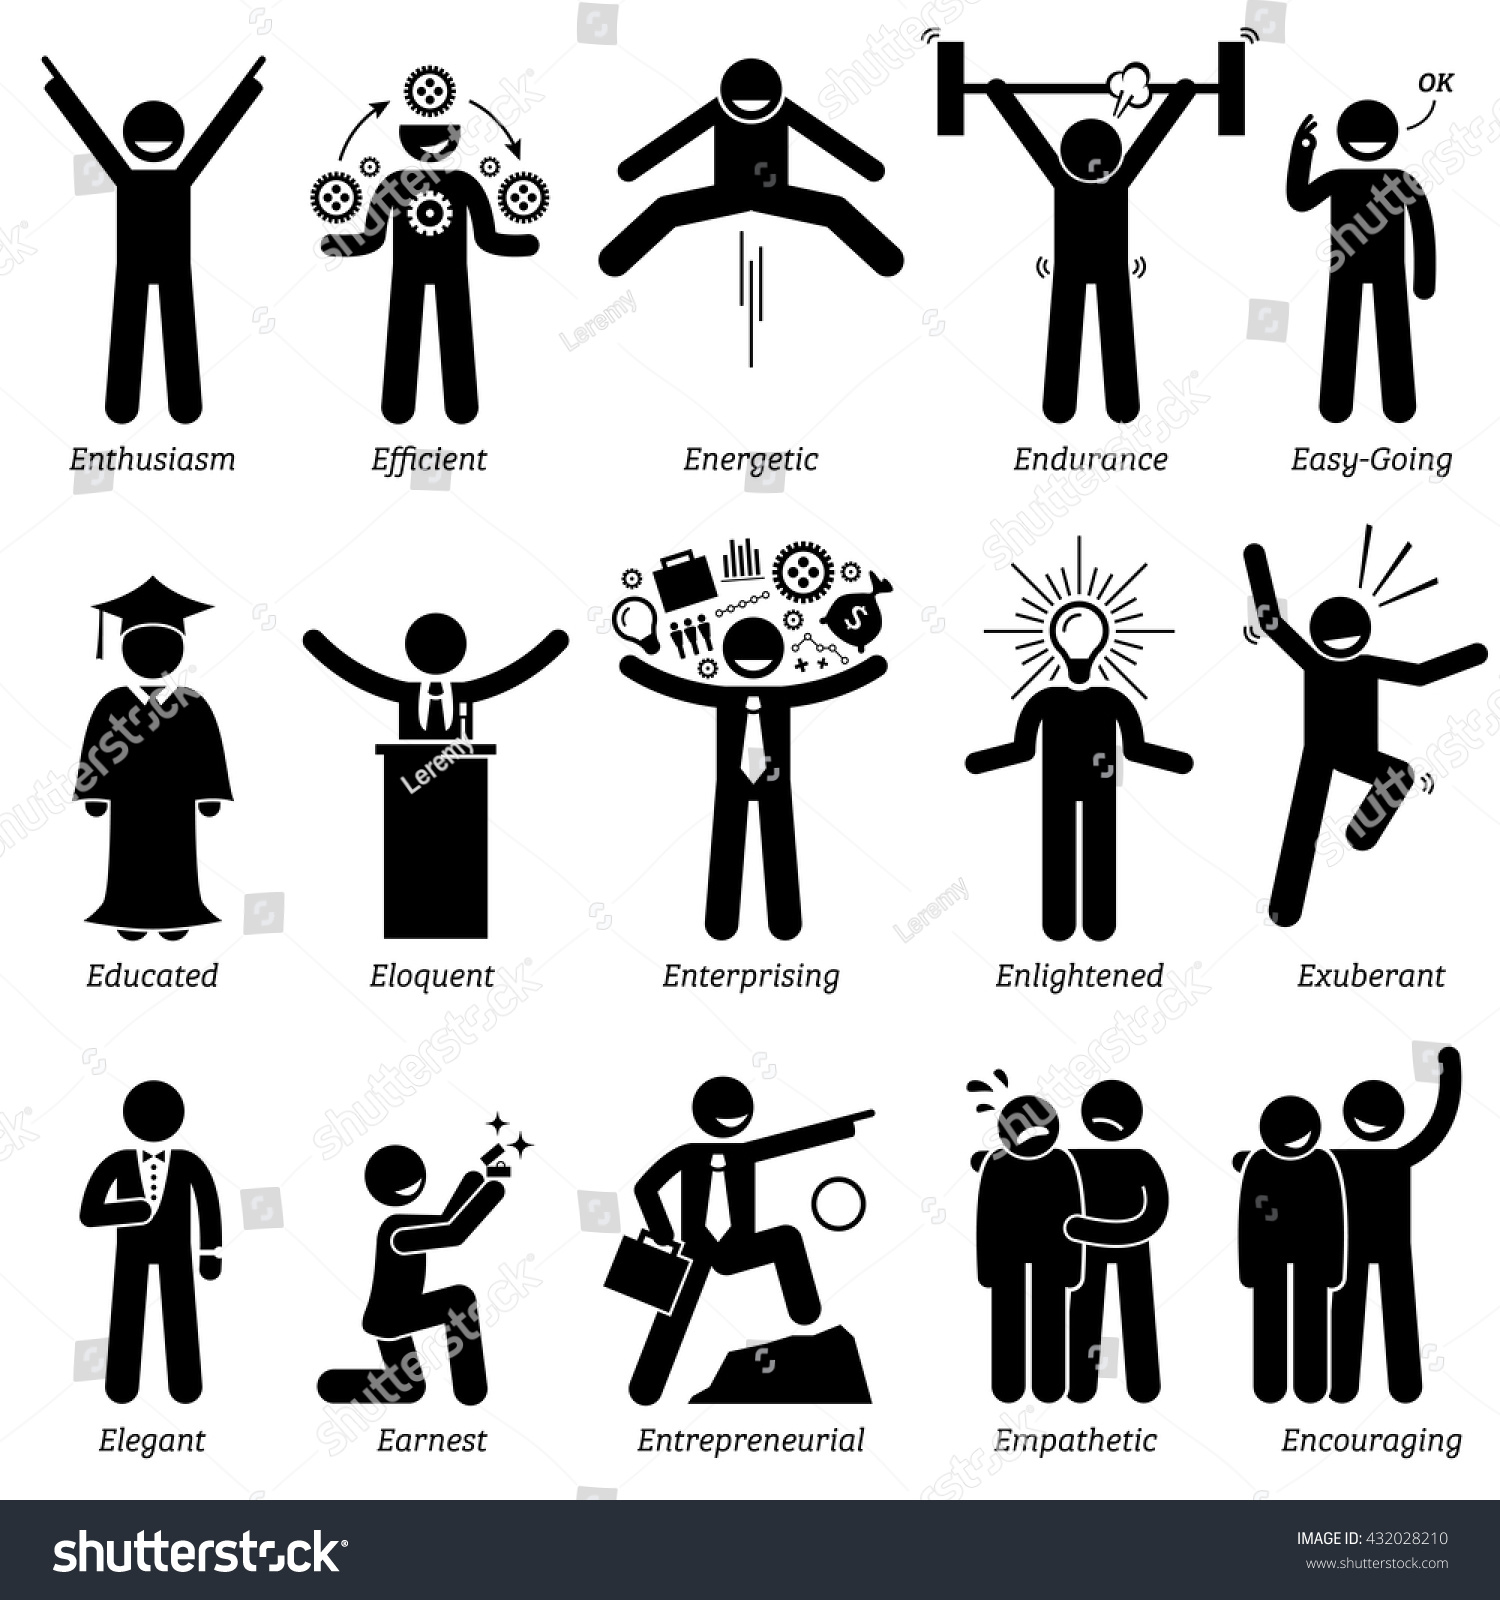 Positive Personalities Character Traits Stick Figures